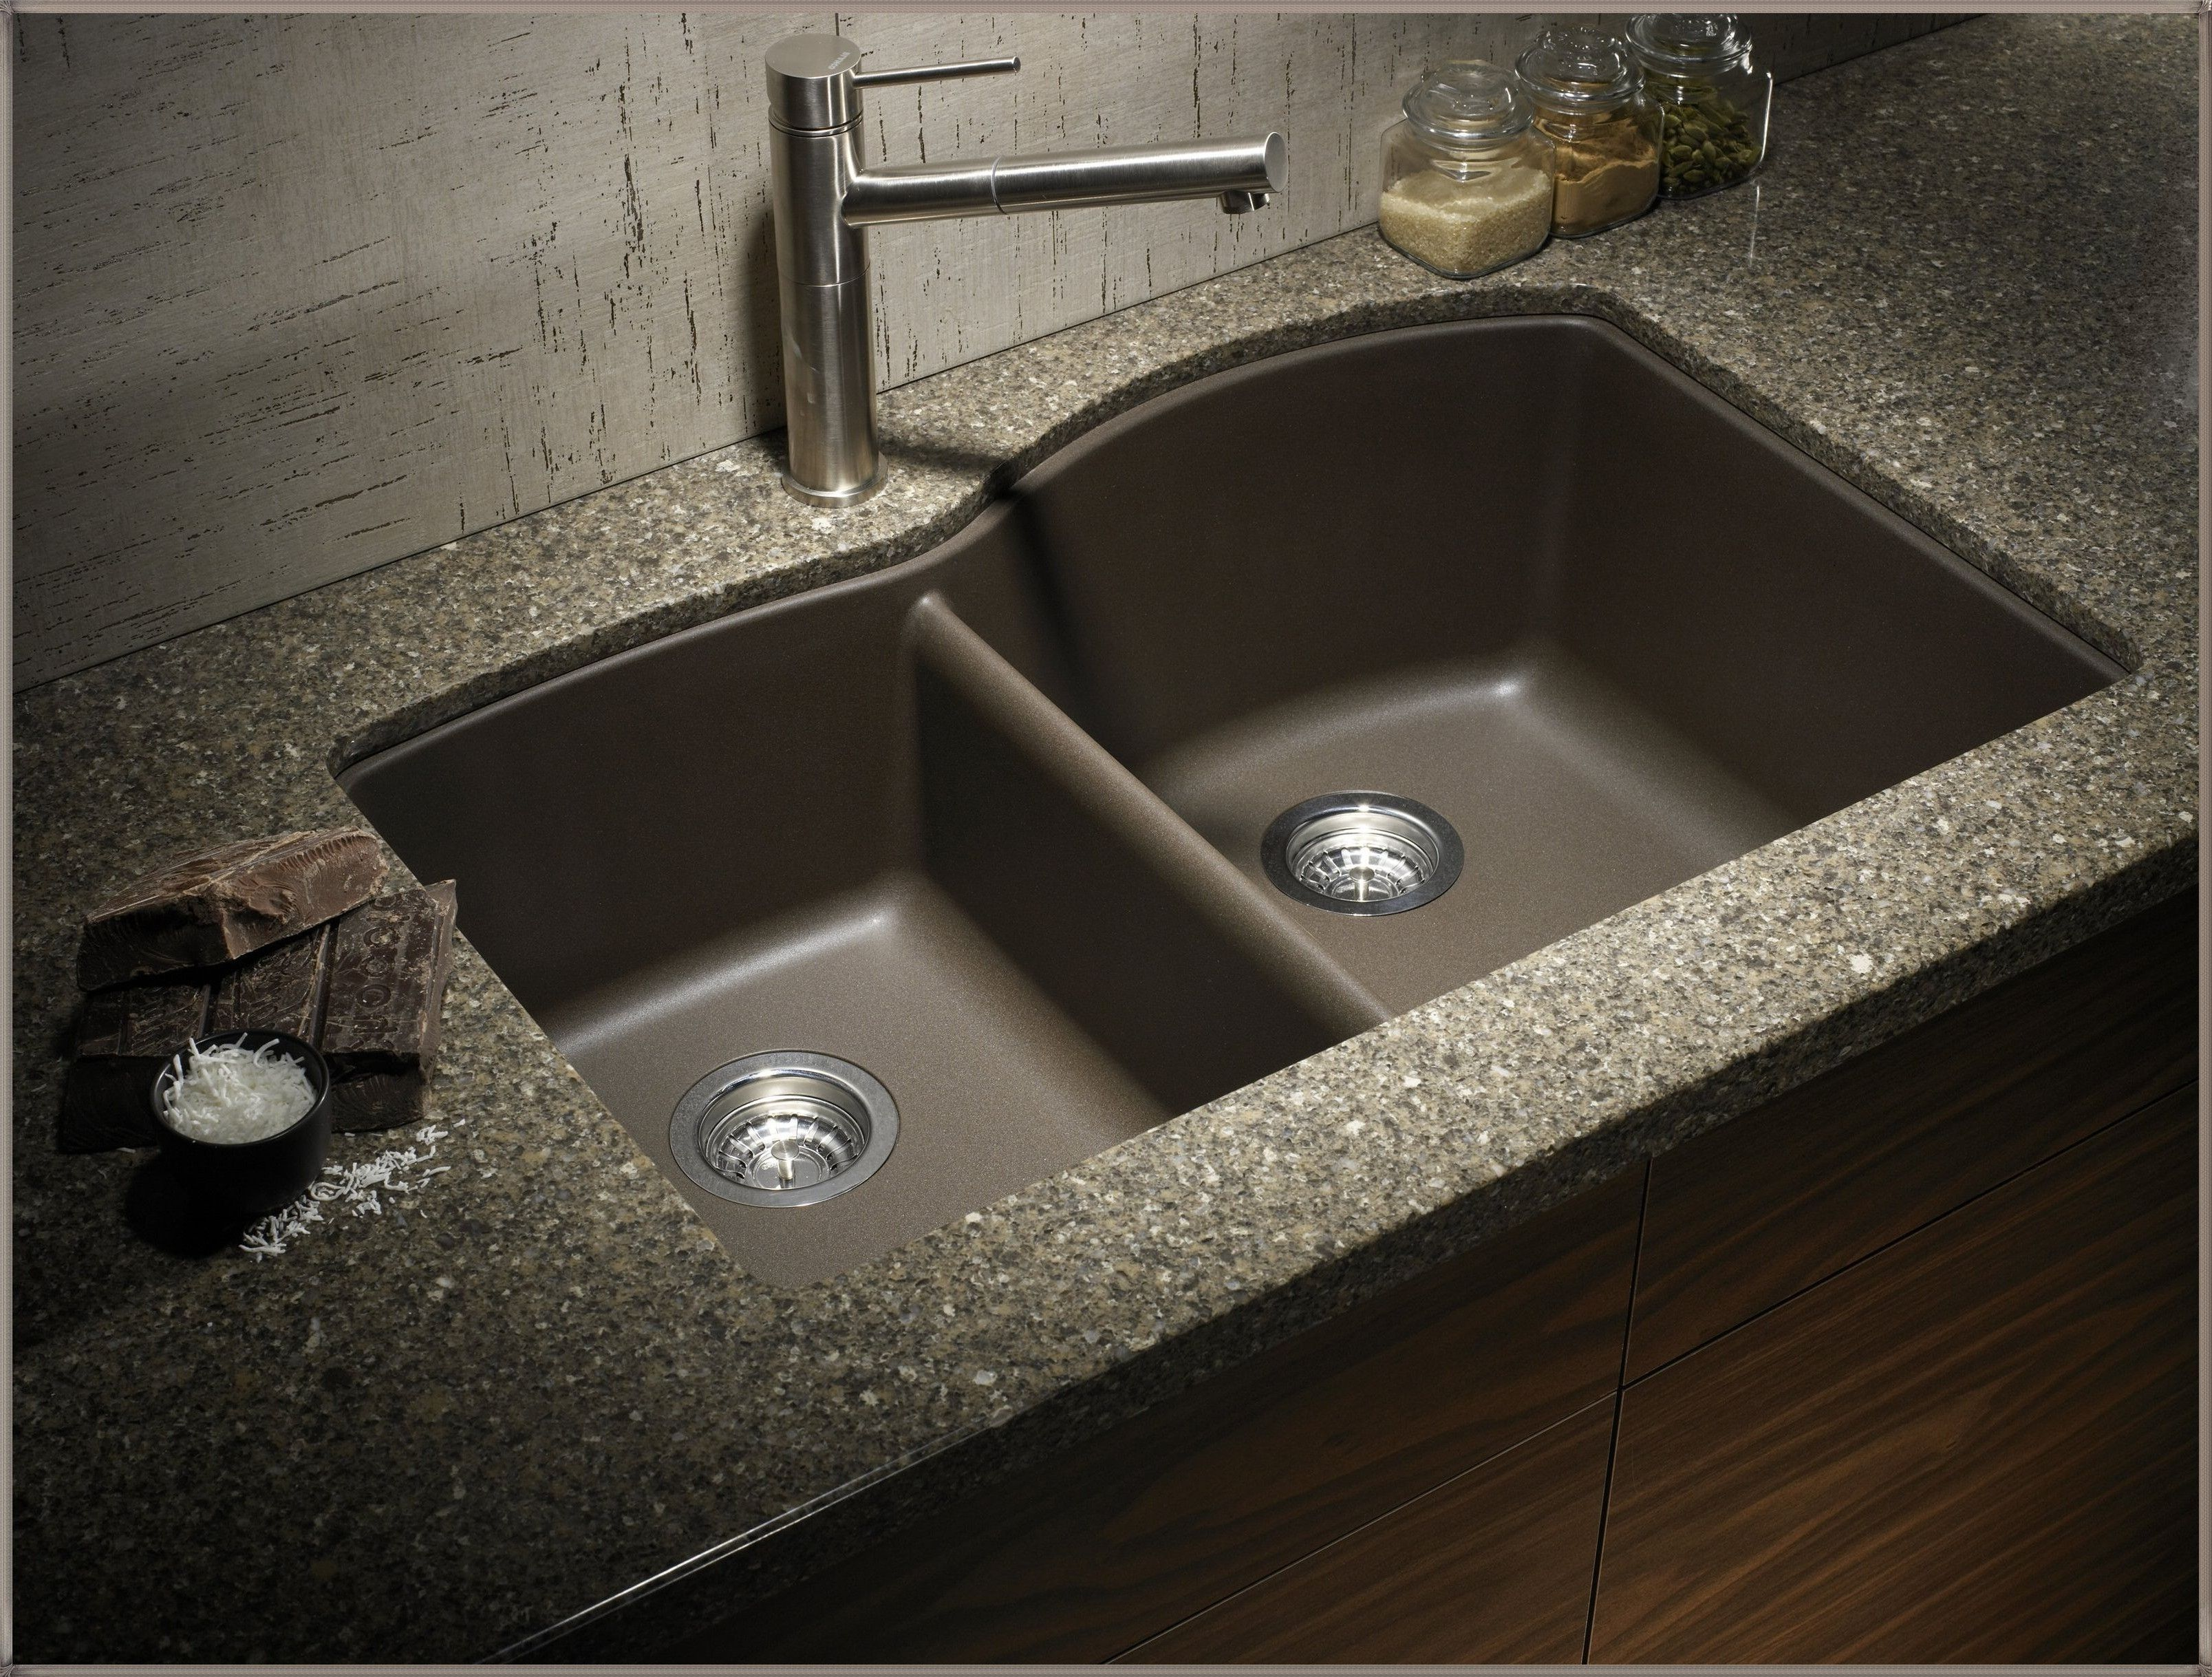 Kitchen Sink 33x19x8 yonkou tei Pinterest